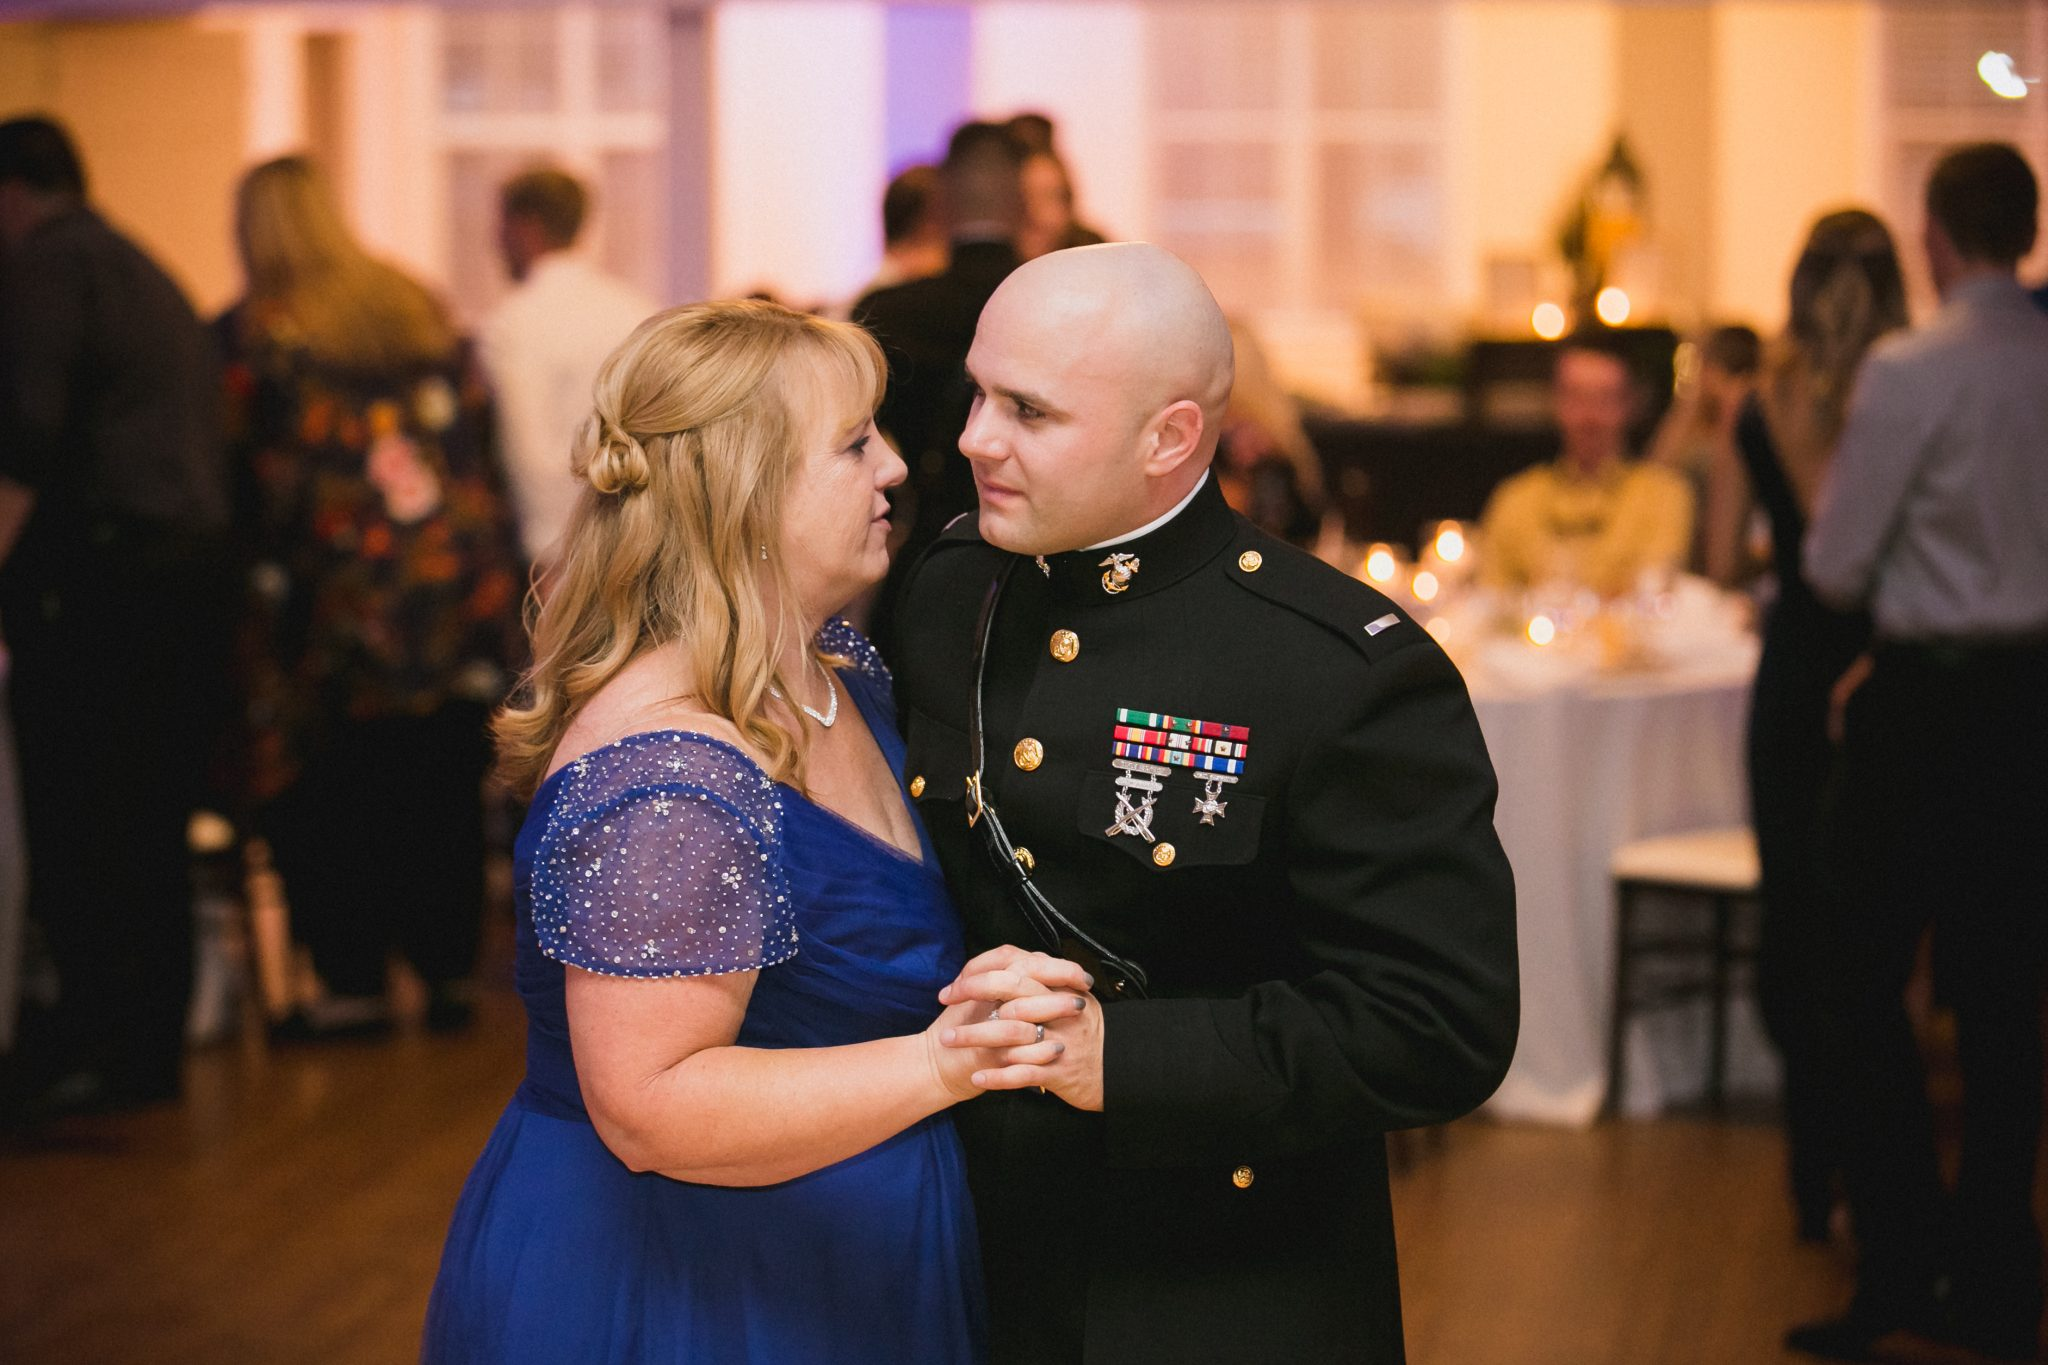 Mother son dance at the wedding reception